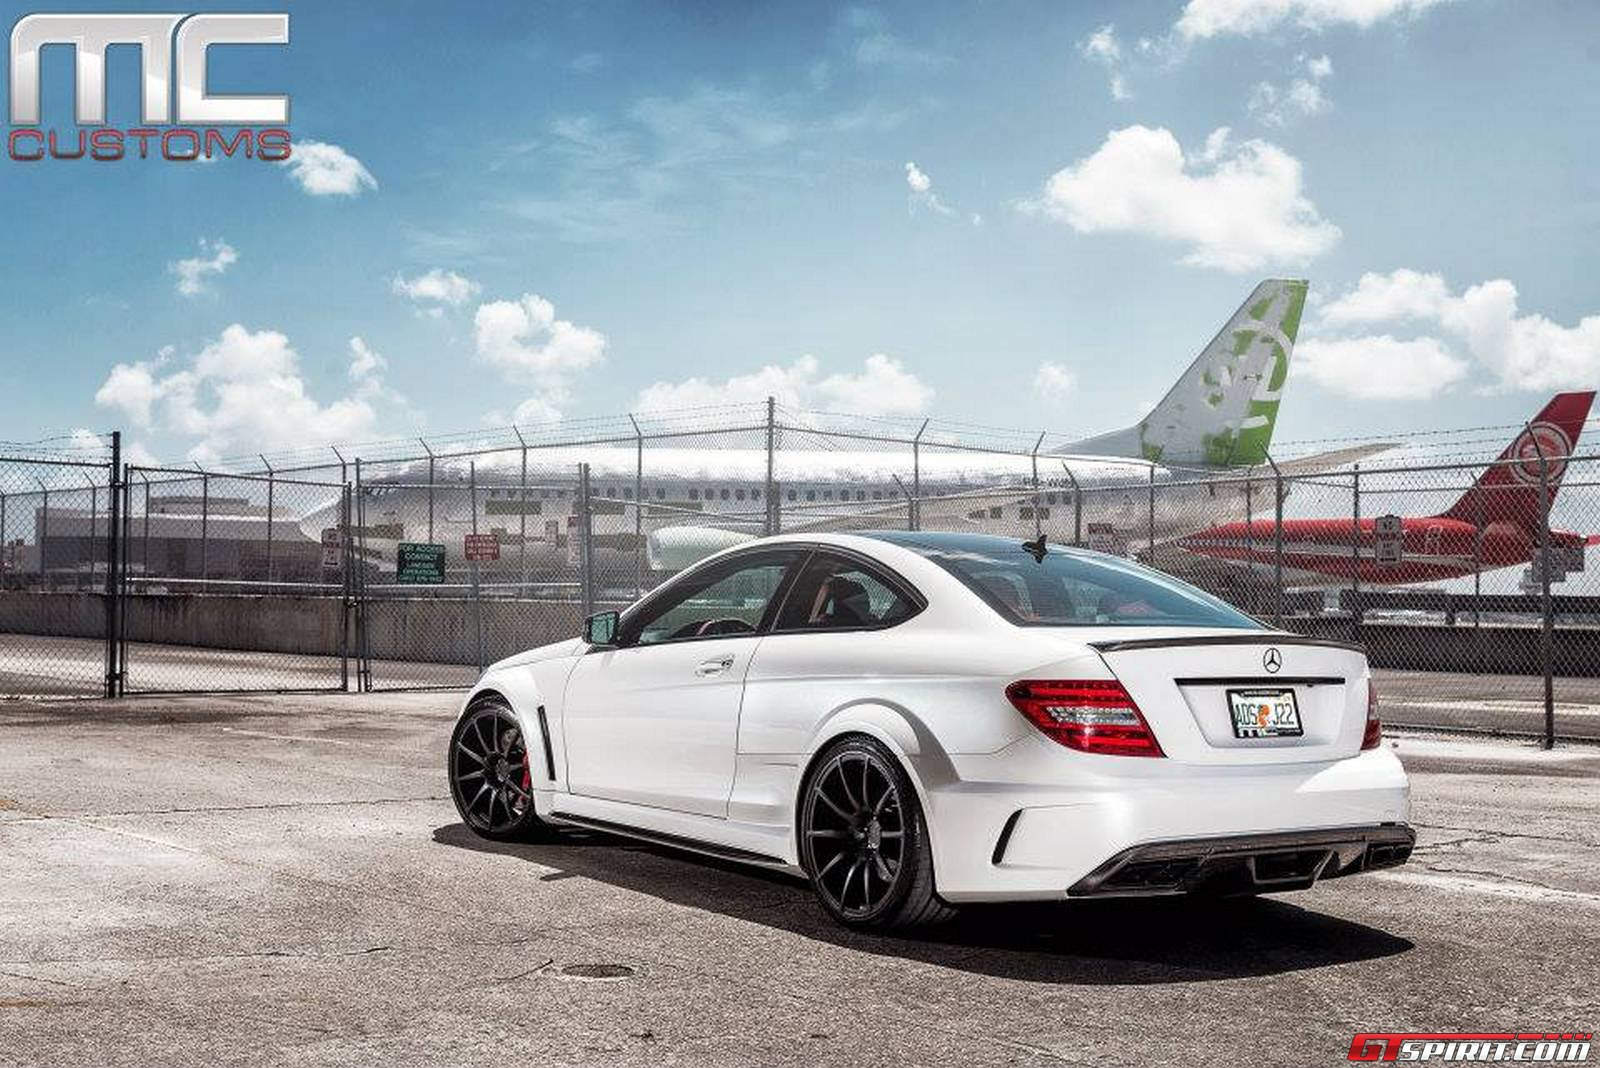 mercedes benz c63 amg black series - Mercedes Benz C63 Amg Black Series White